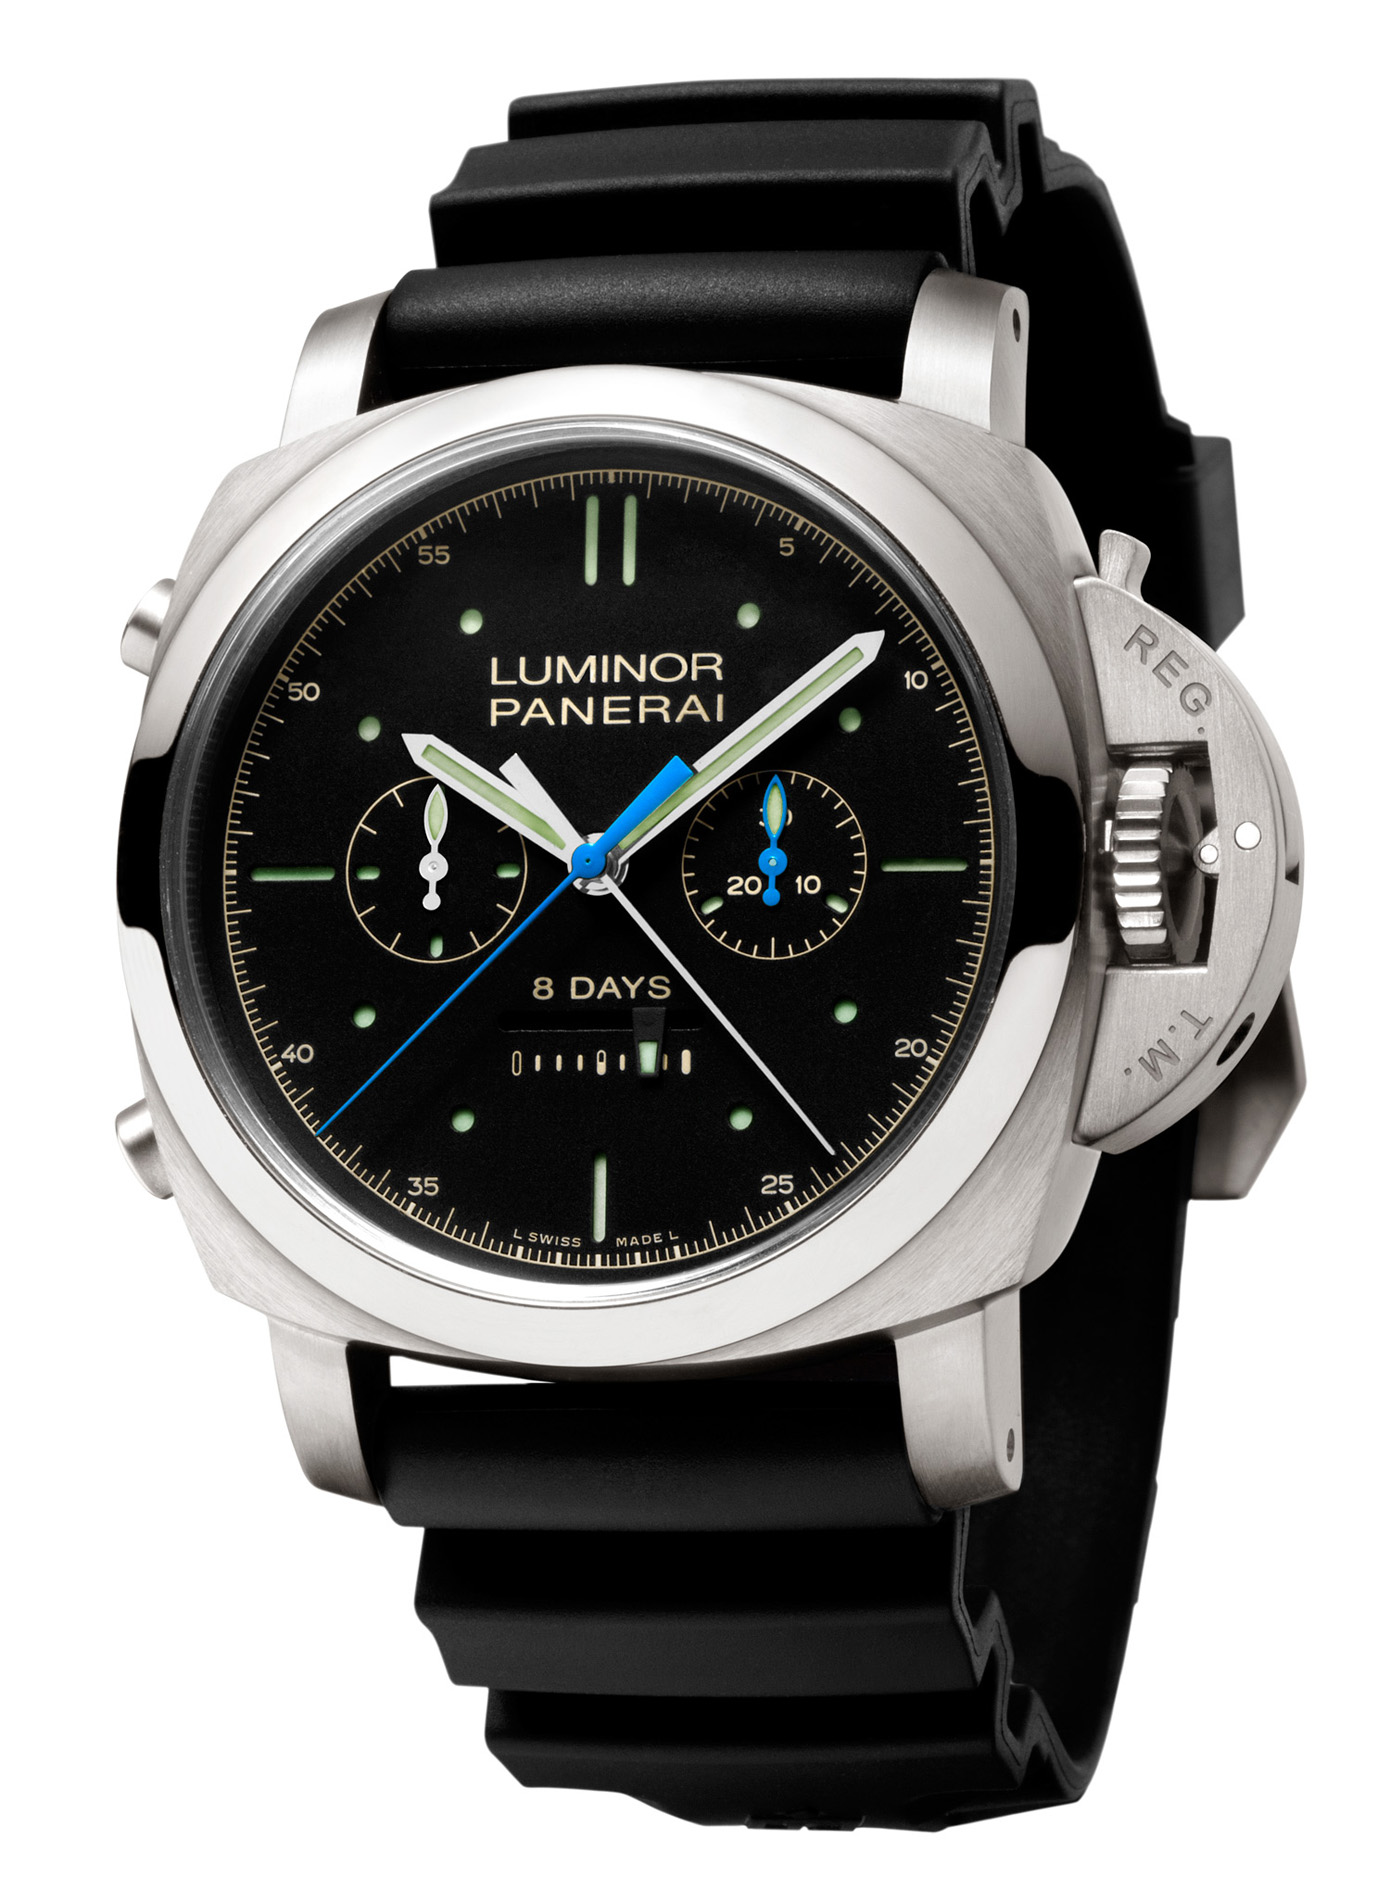 Panerai Luminor 1950 Rattrapante 8 Days Titanio